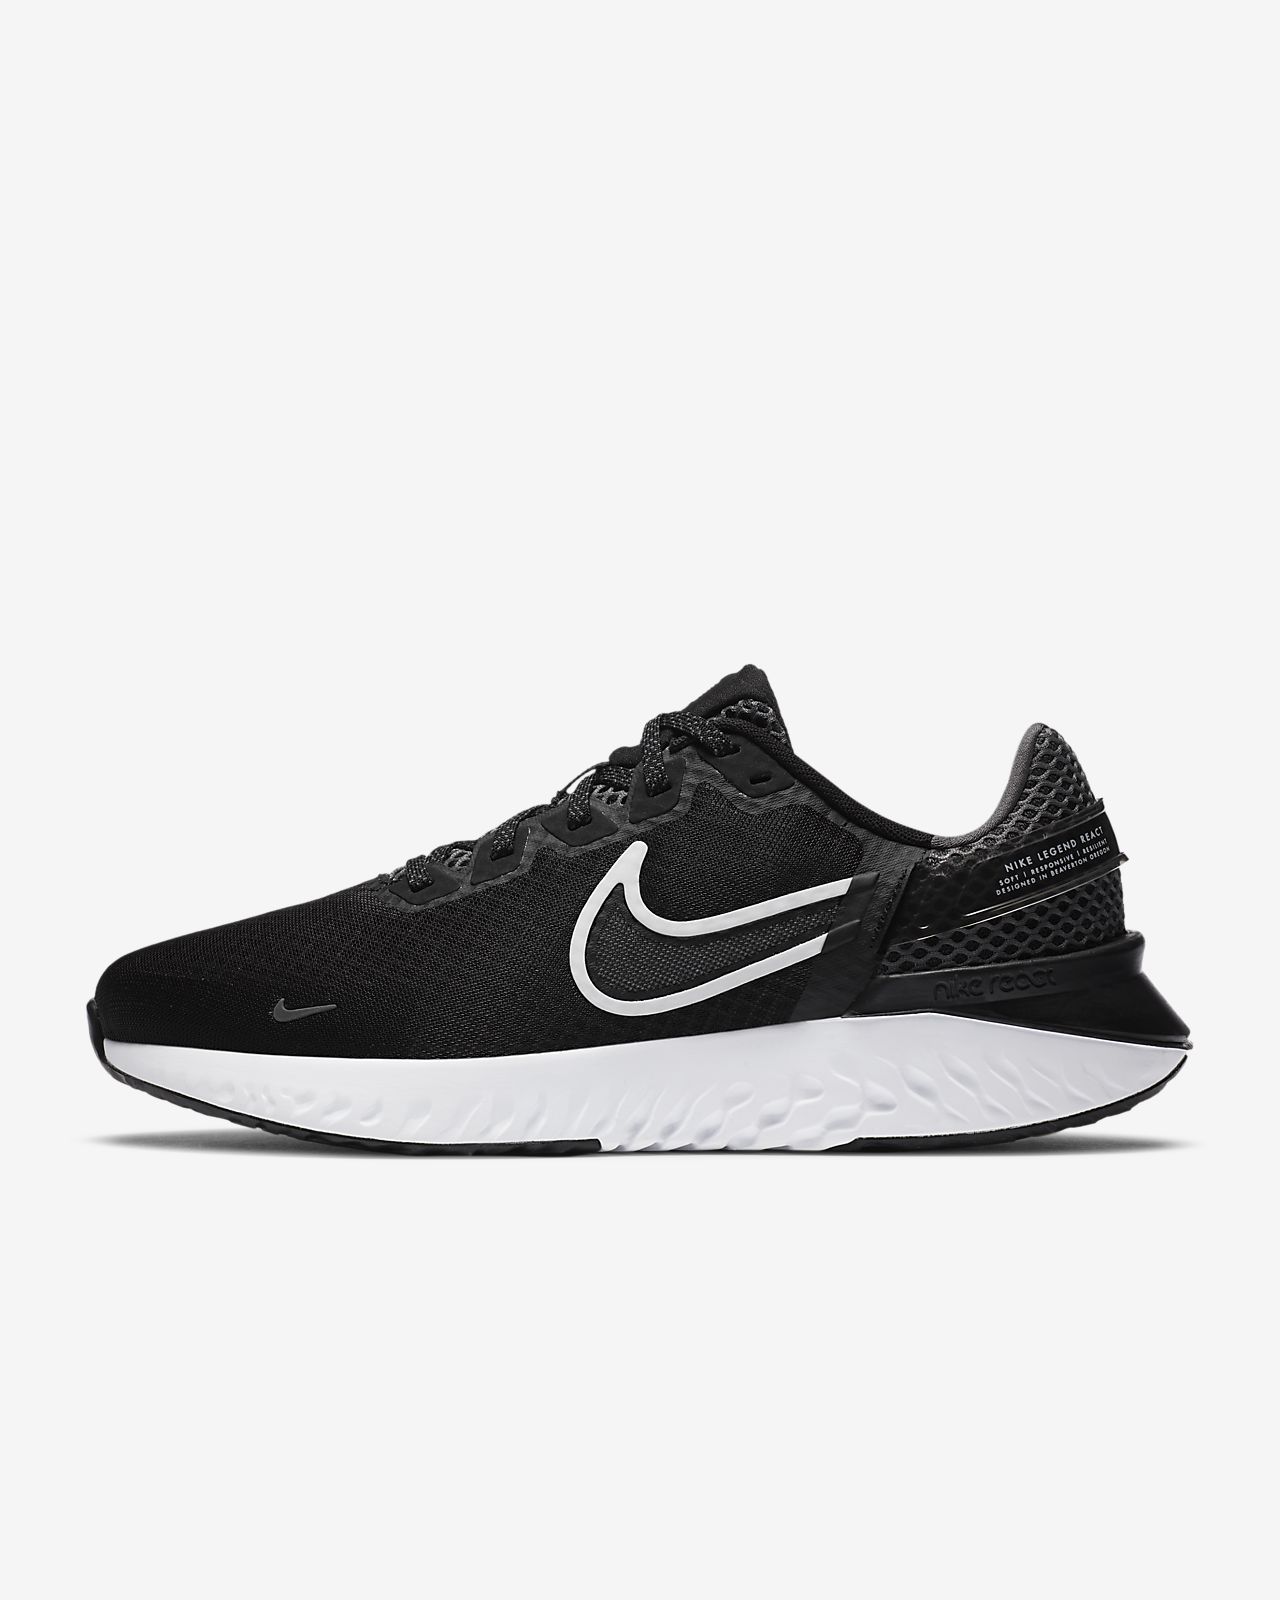 Nike Legend React 3 Men's Running Shoe